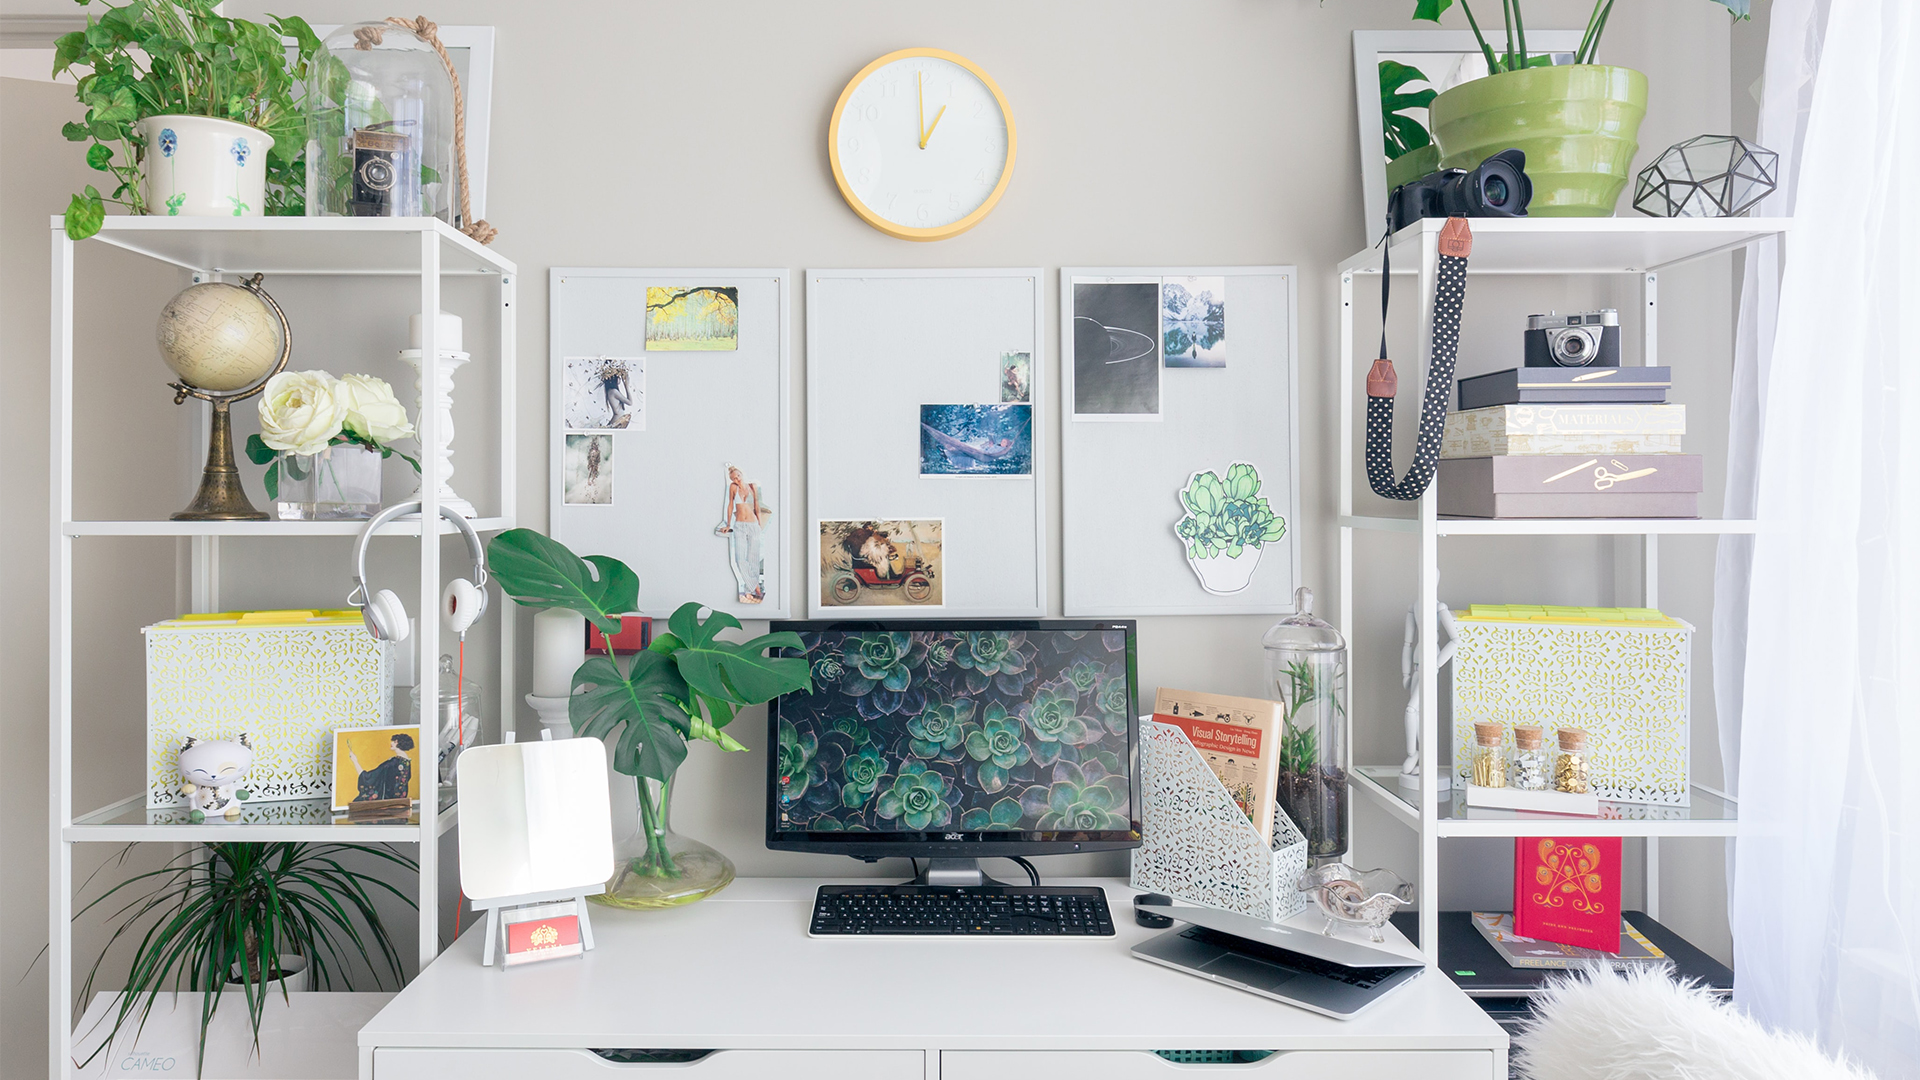 Home Office Decor Ideas 20 Ways To Amp Up Your WFH Space ...